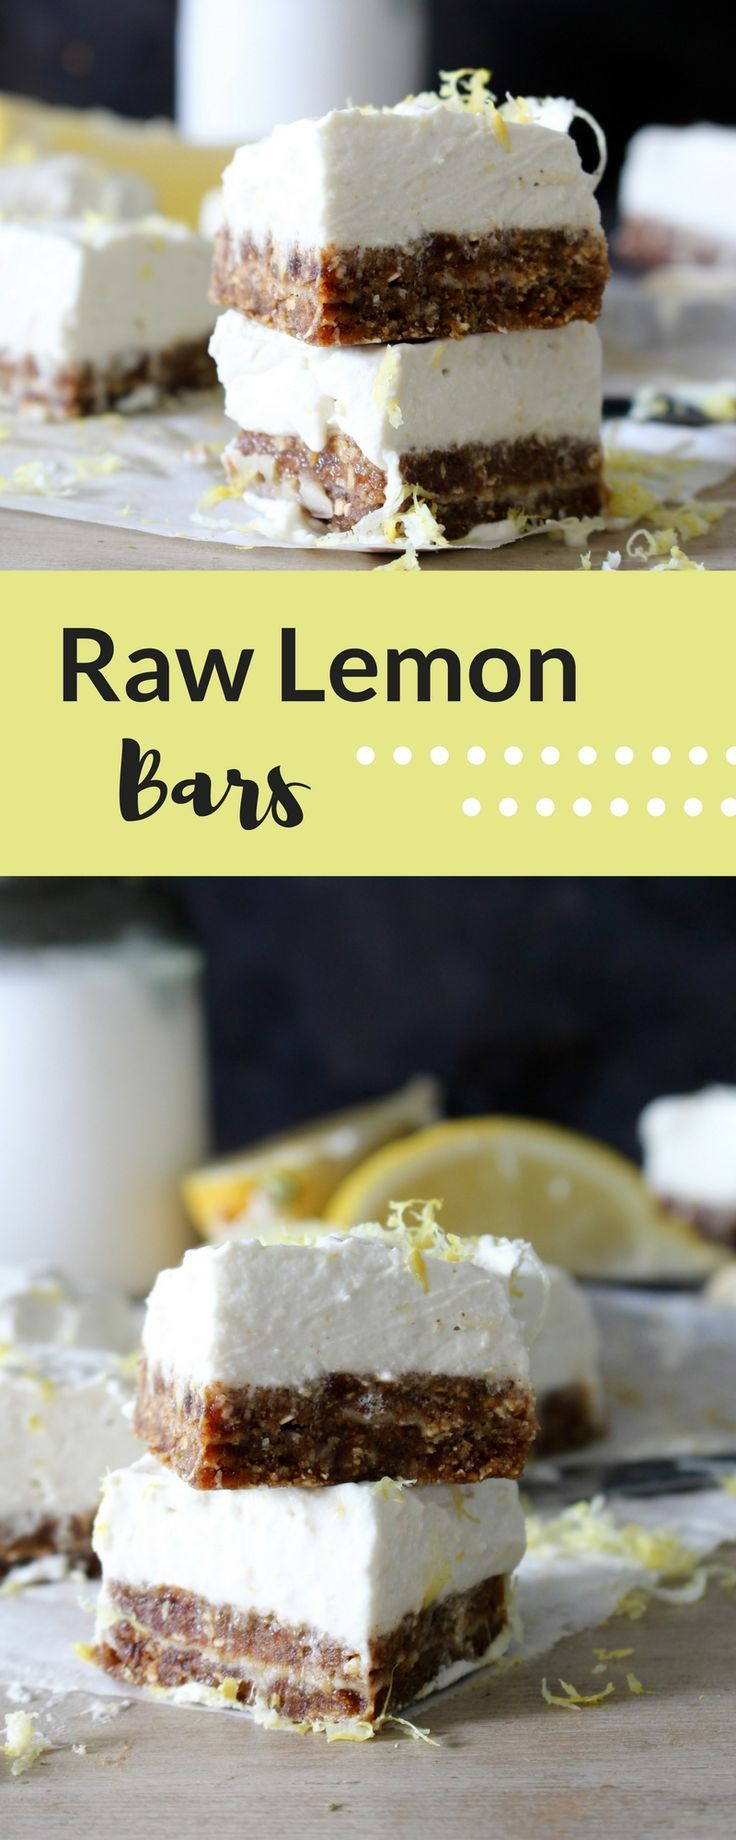 Raw Lemon Coconut Bars that are vegan and gluten free and great for sharing for dessert or keeping all to yourself!